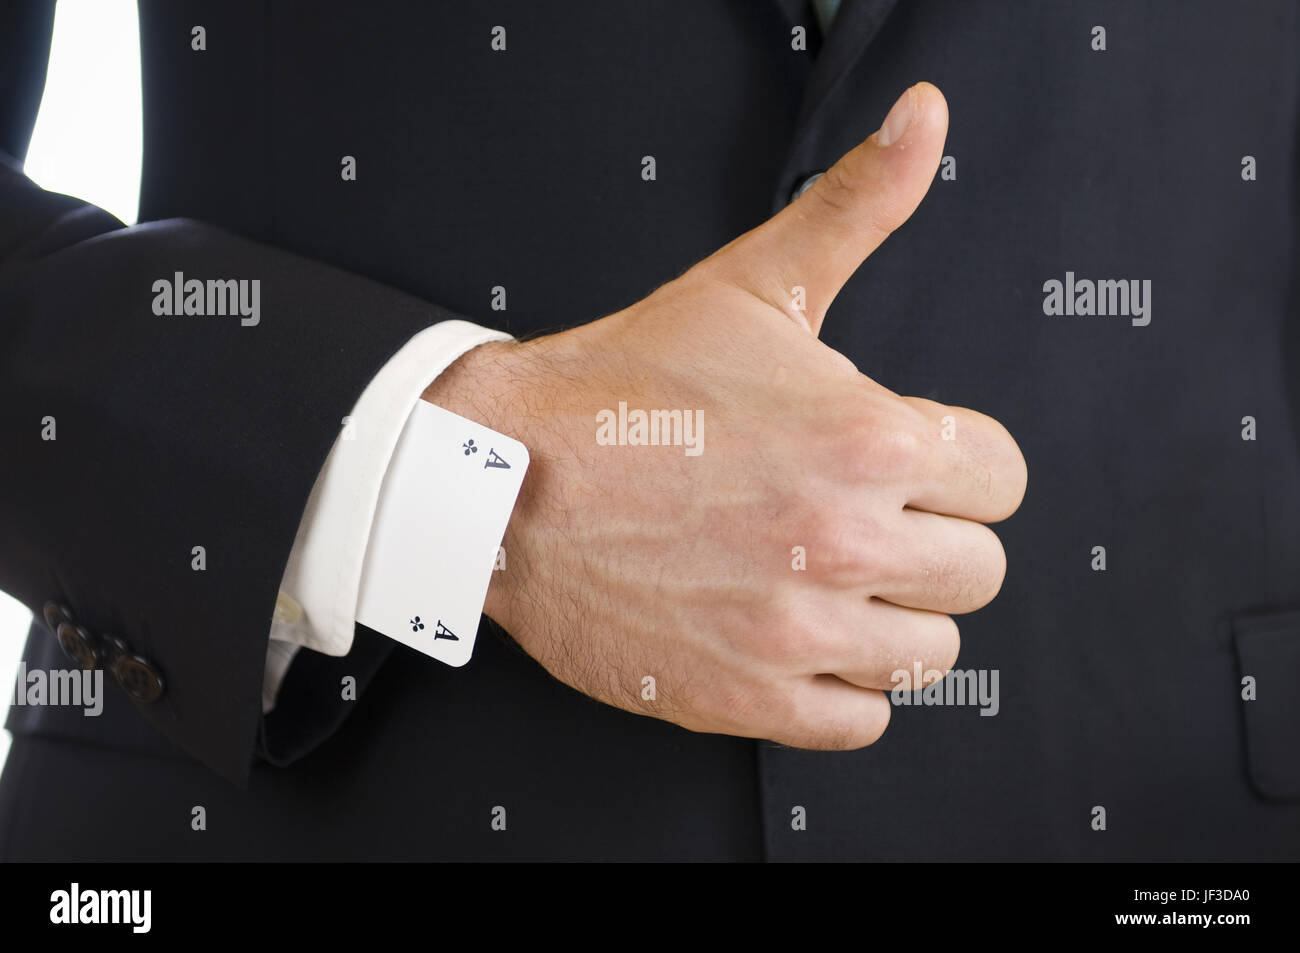 thumbs up for youngest hand - Stock Image